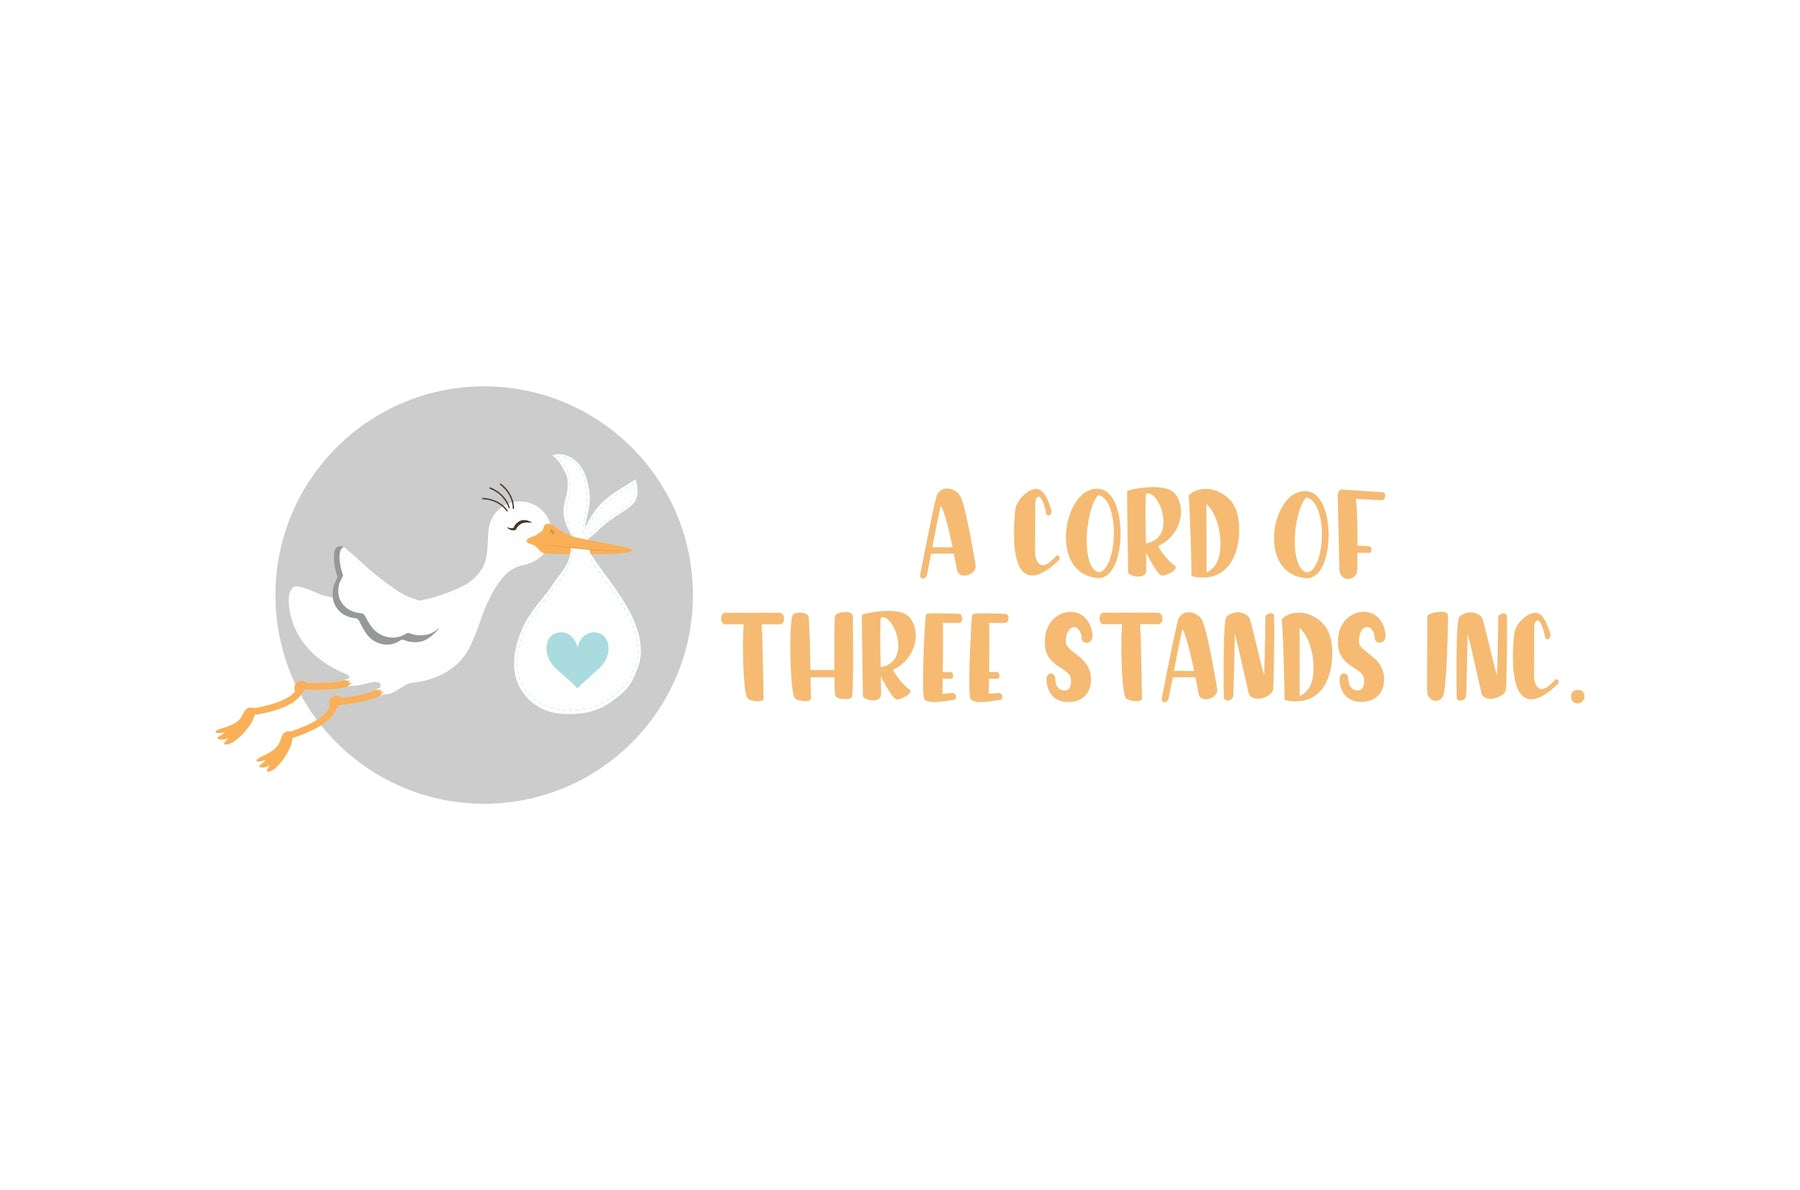 a cord of three stands inc.